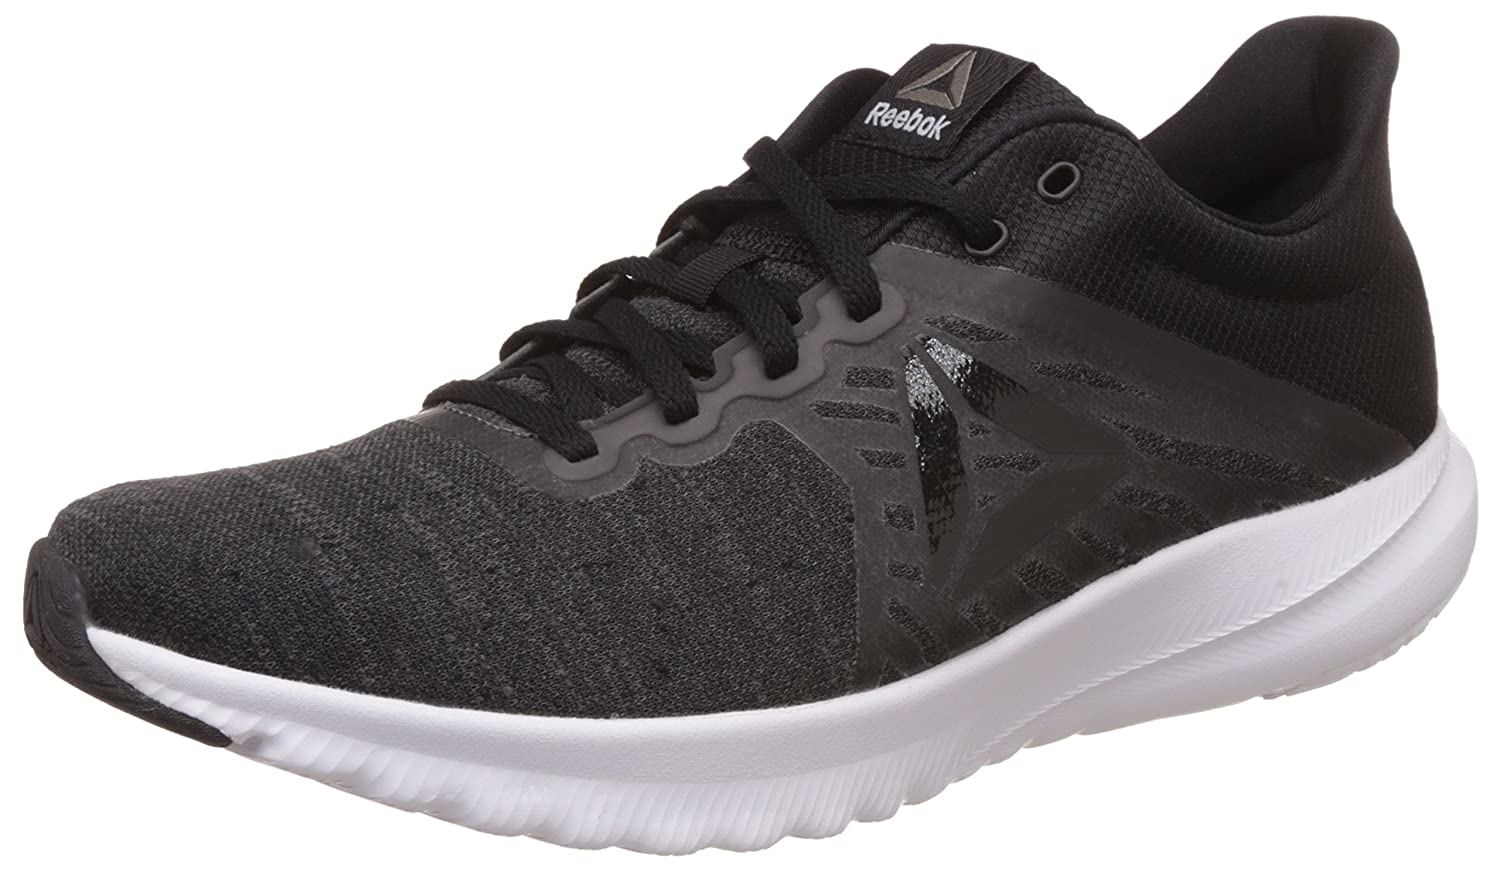 7c4b14ab Reebok Men's OSR Distance 3.0 Running Shoes: Buy Online at Low Prices in  India - Amazon.in